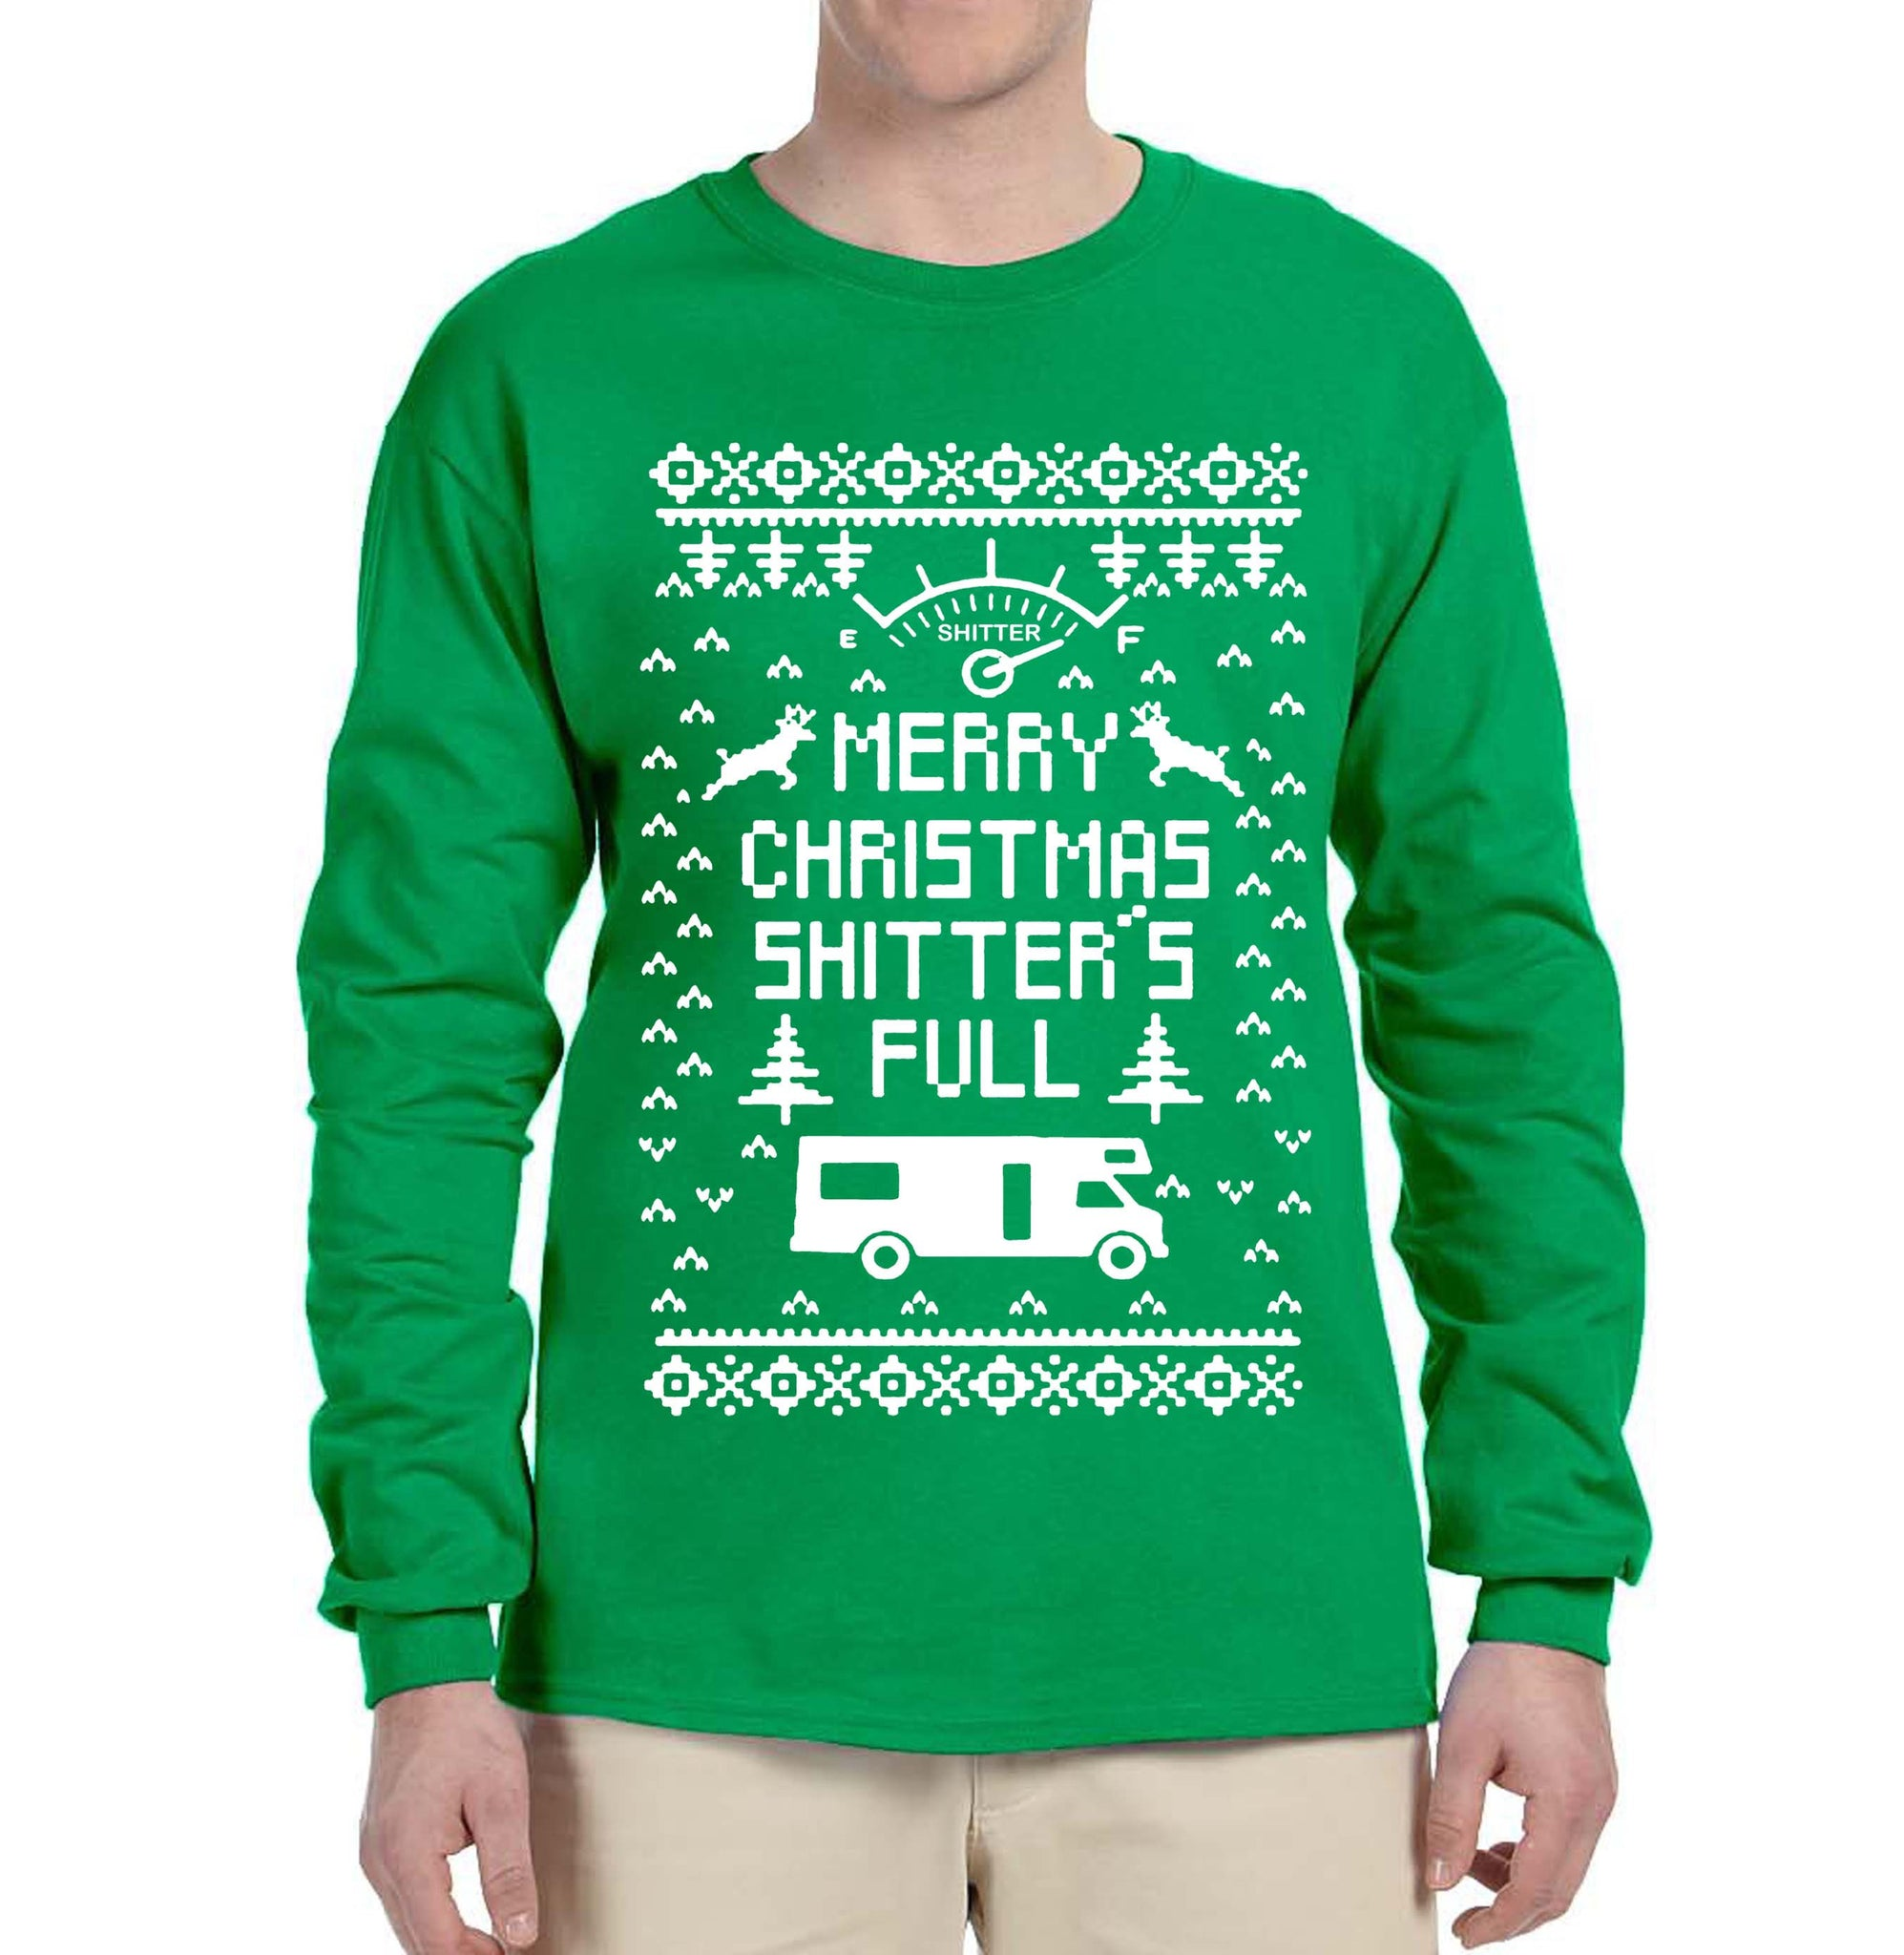 63e828573b ... Merry Christmas Shitters Full Ugly Christmas Sweater Shirt Christmas  Sweater Longsleeve Shirt Funny Christmas Tee Ugly ...